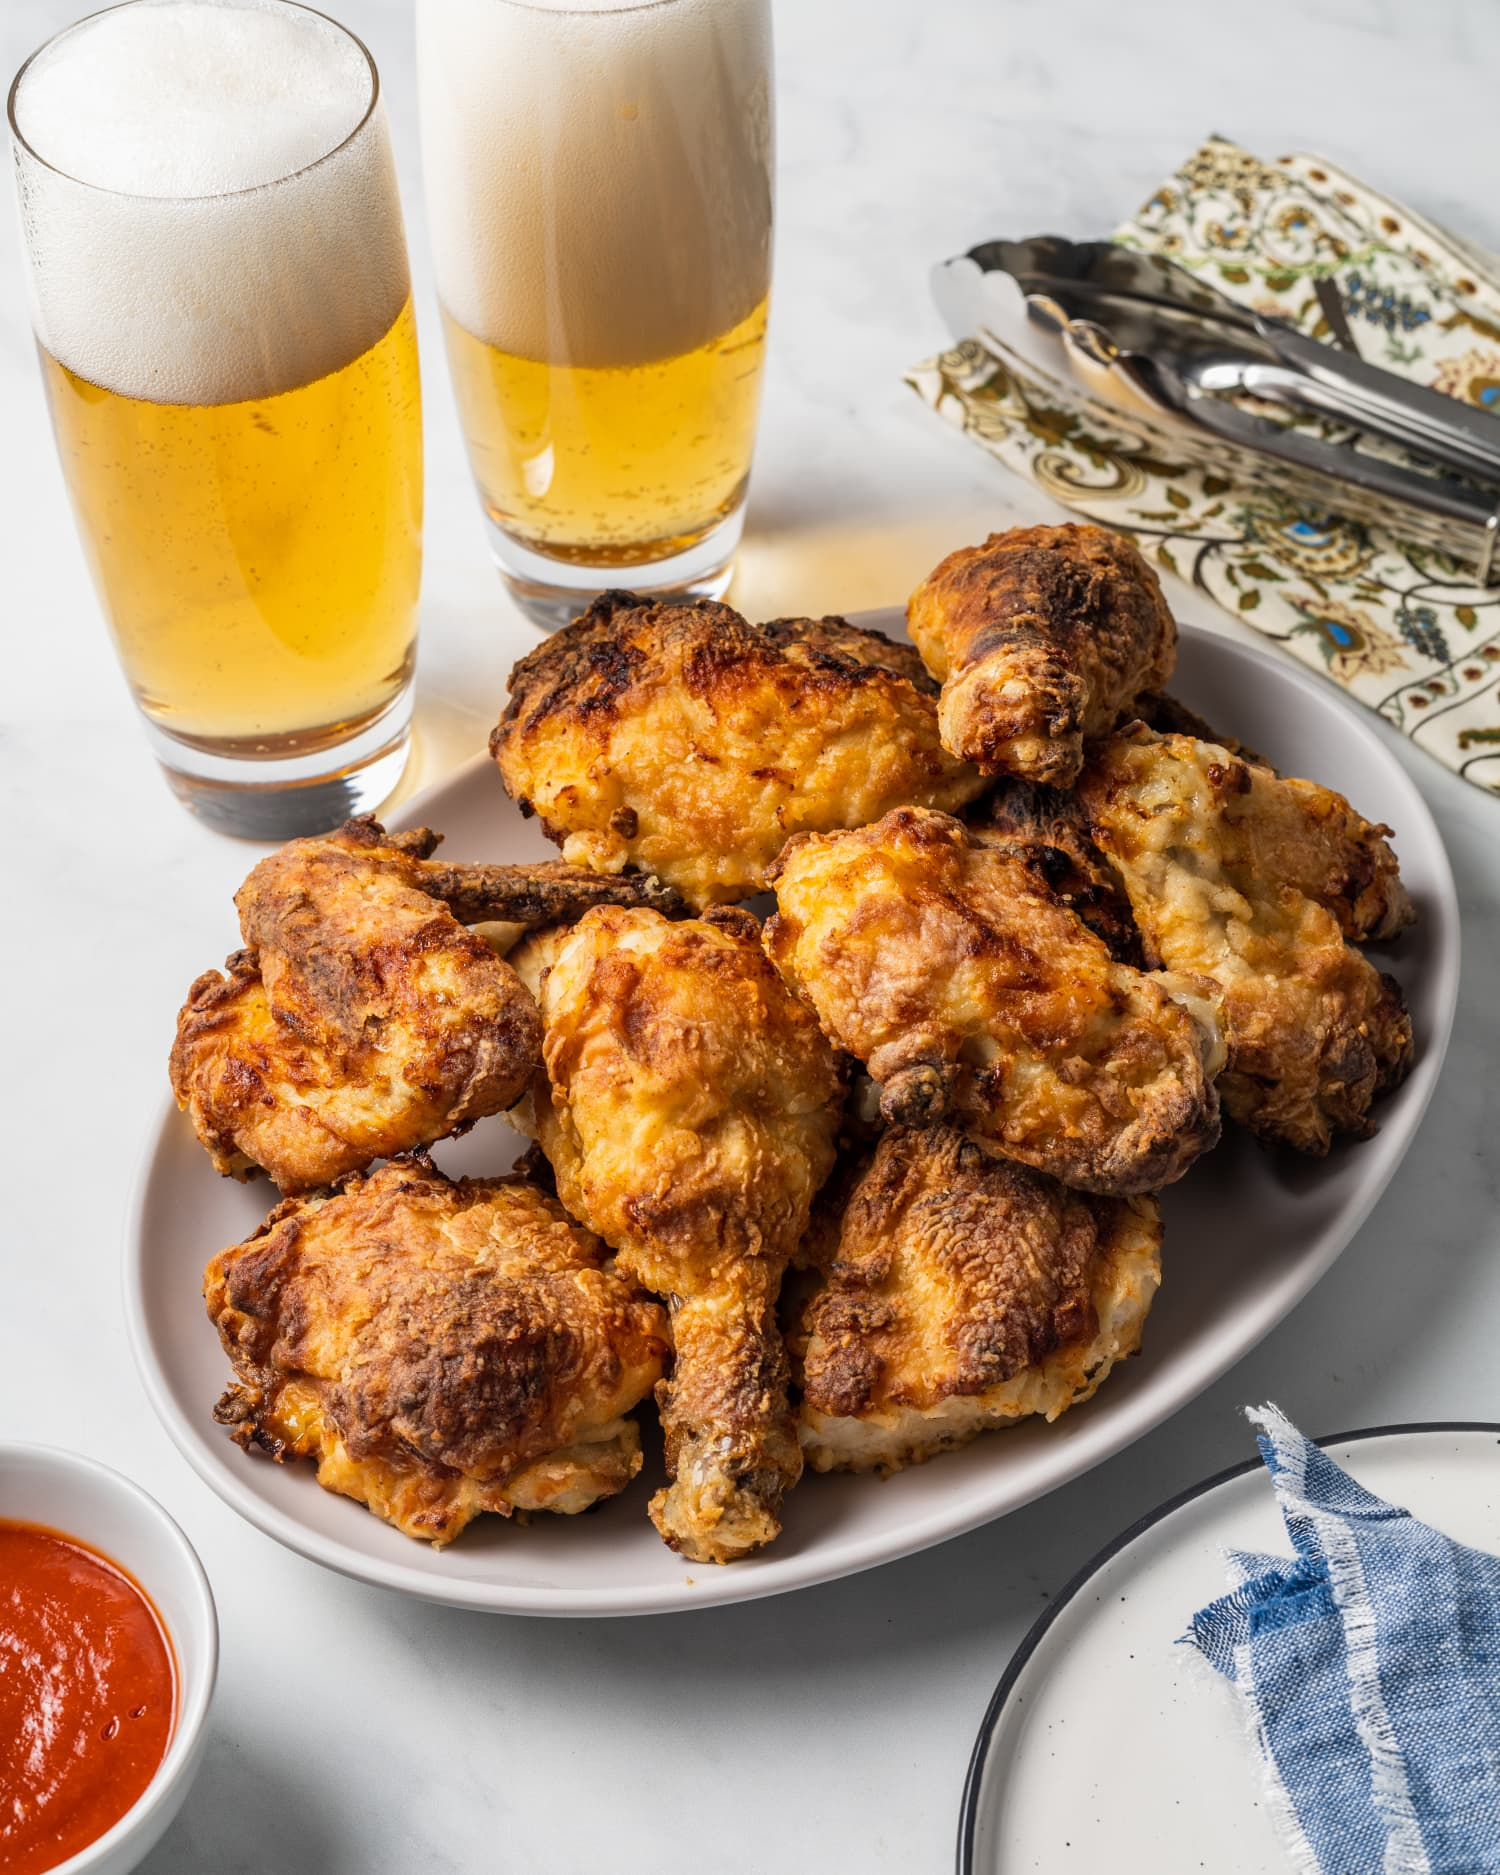 Skip the Deep-Frying and Make Crispy, Juicy Fried Chicken in the Air Fryer